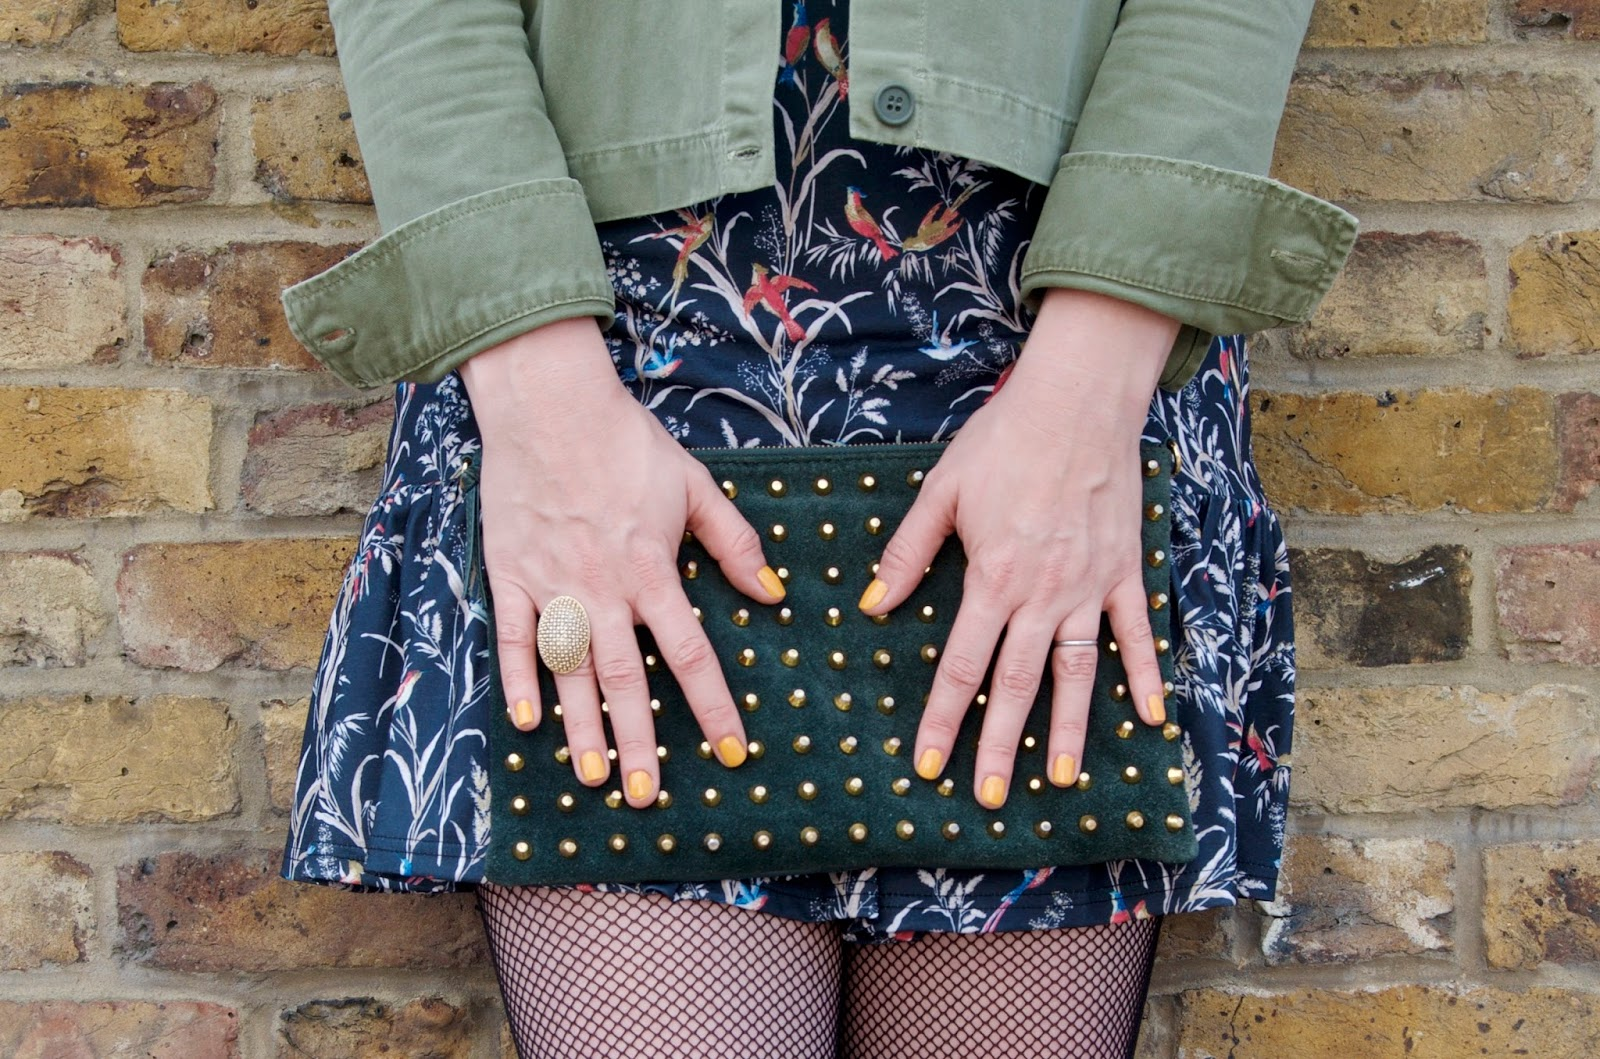 yellow nail polish, floral dress, green jacket, green suede studded clutch and fishnet tights